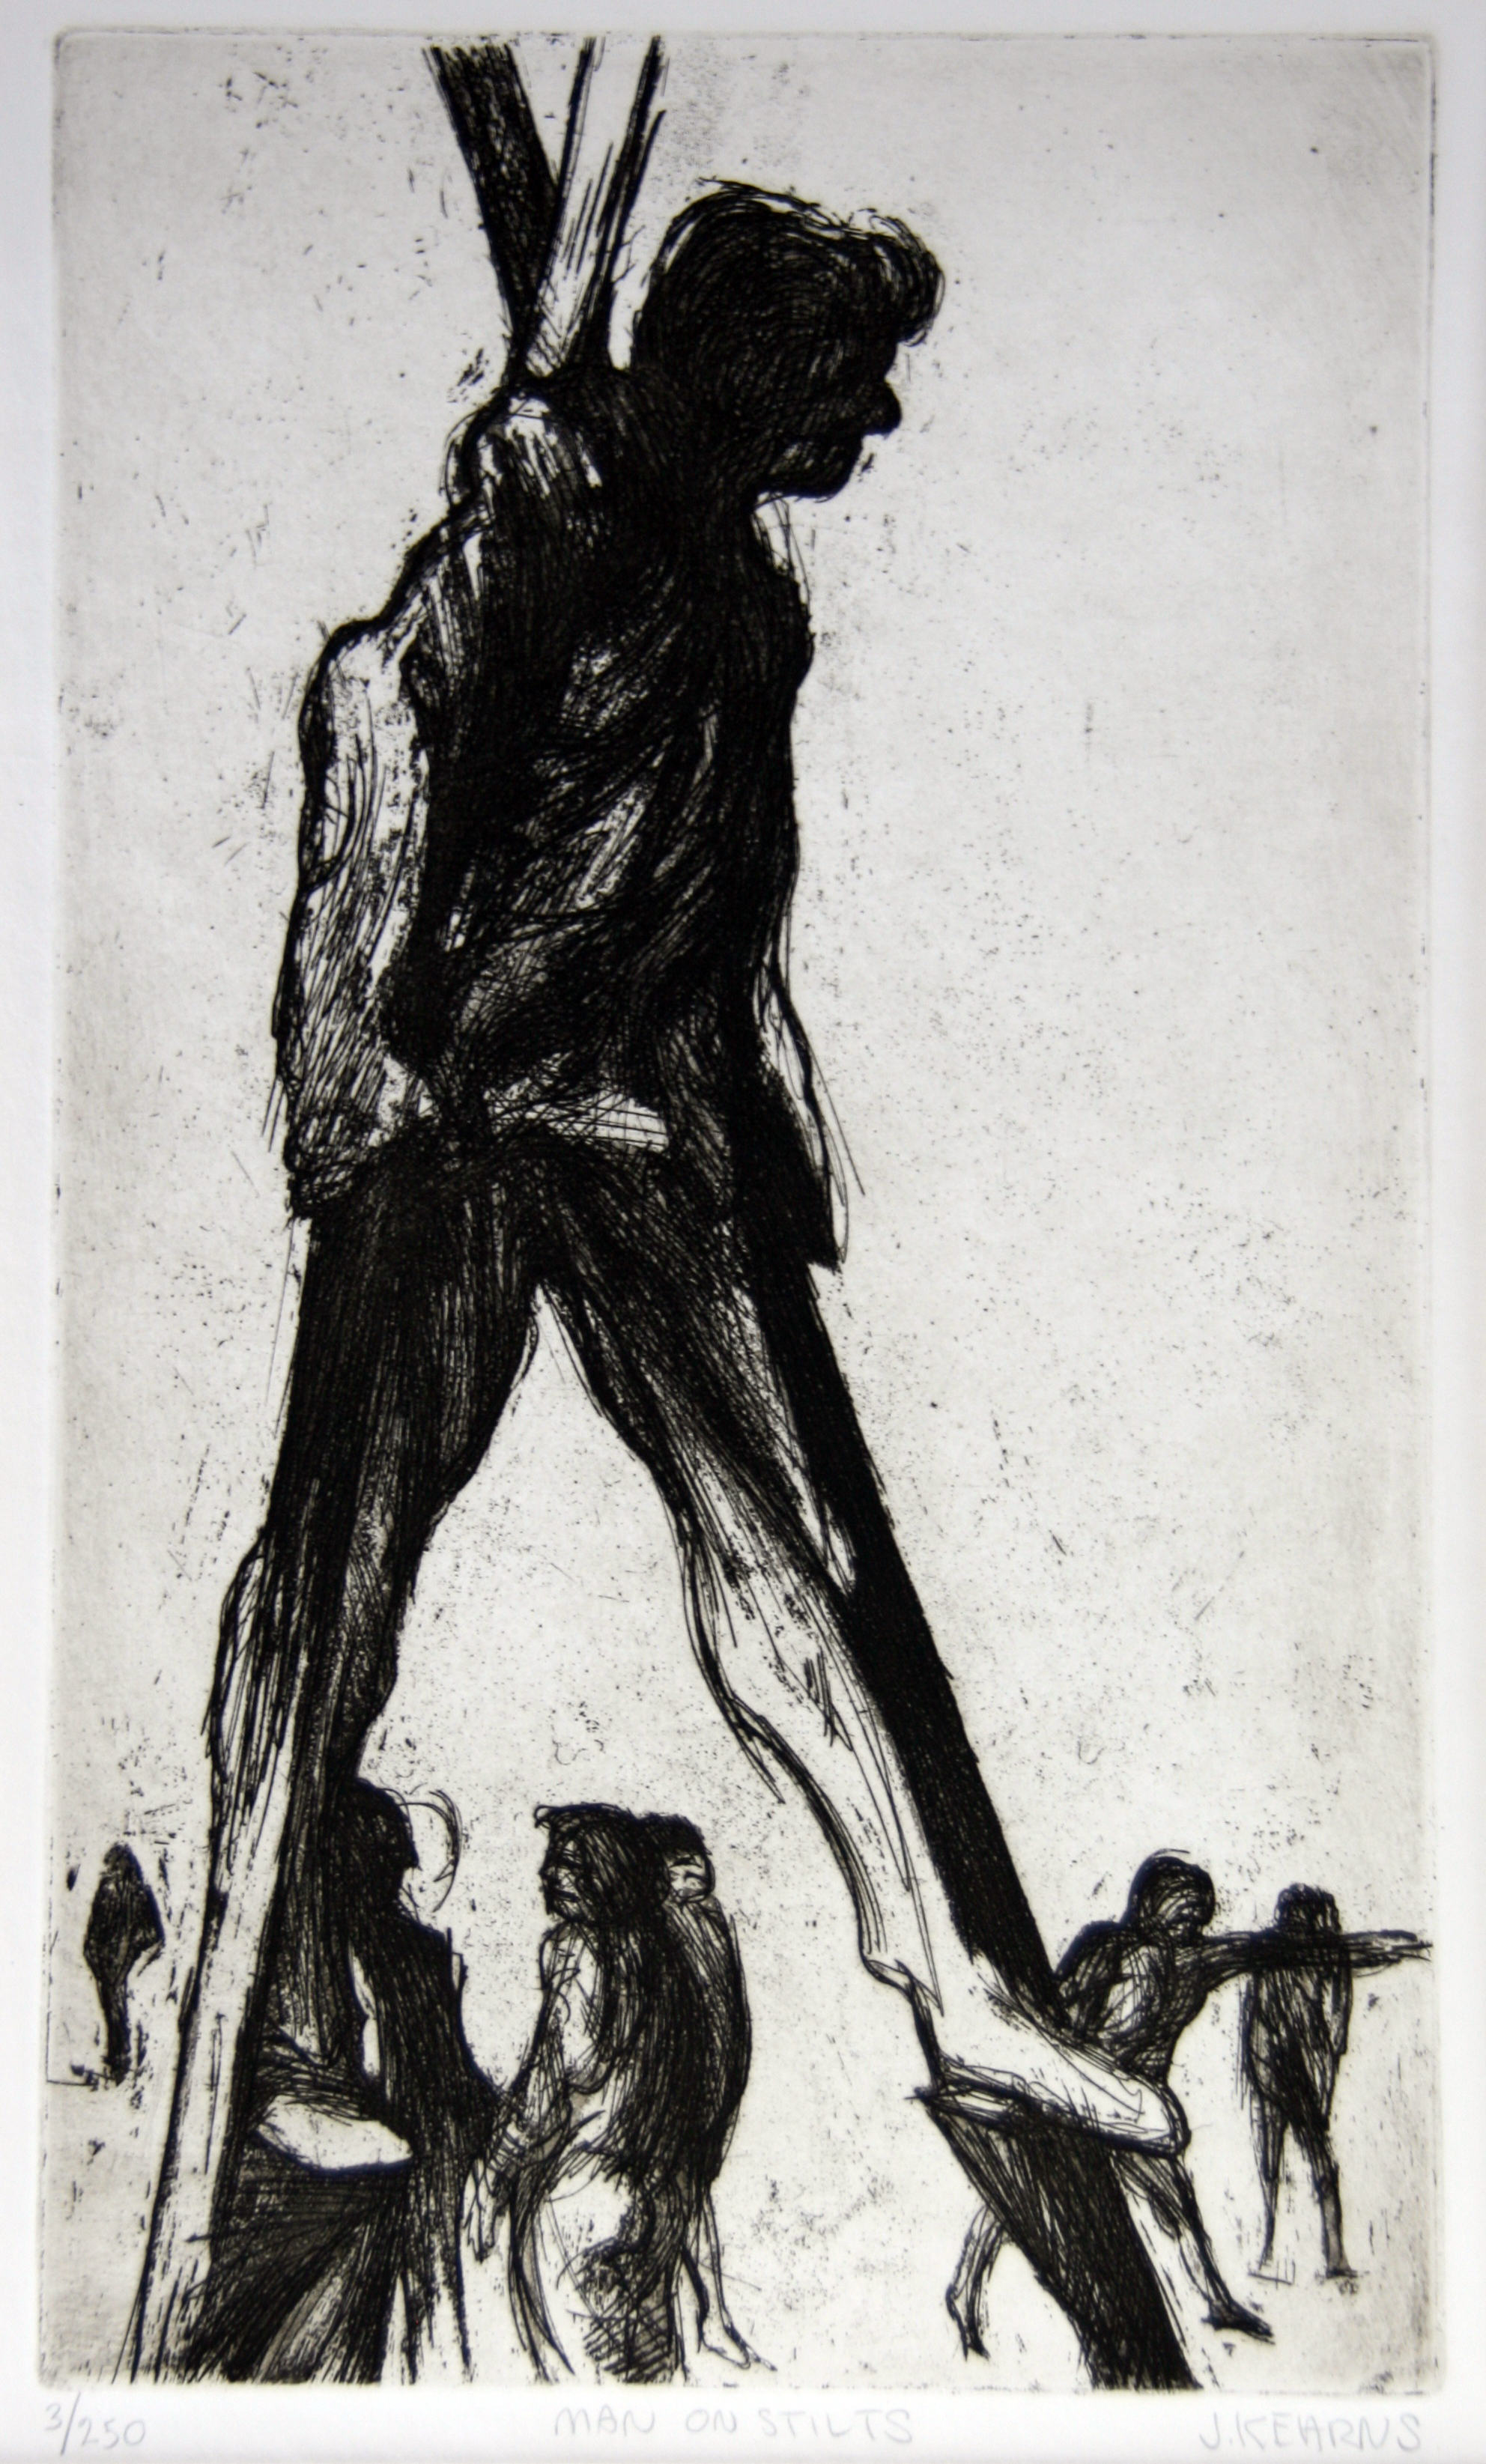 1981.016 | James Kearns | MAN ON STILTS | etching on paper | 17.5 x 13"